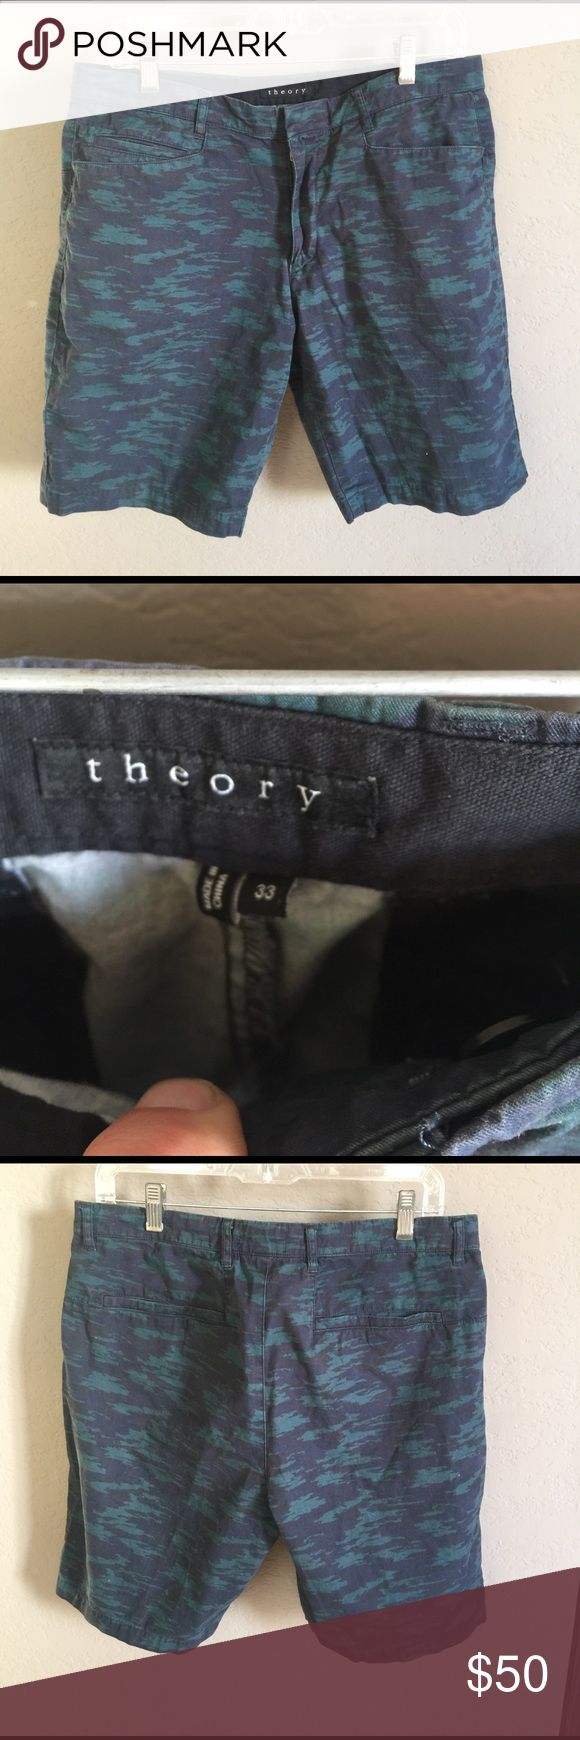 Theory Camouflage Shorts Very hard to find Theory blue and green camouflage shirts. Theory Shorts Flat Front